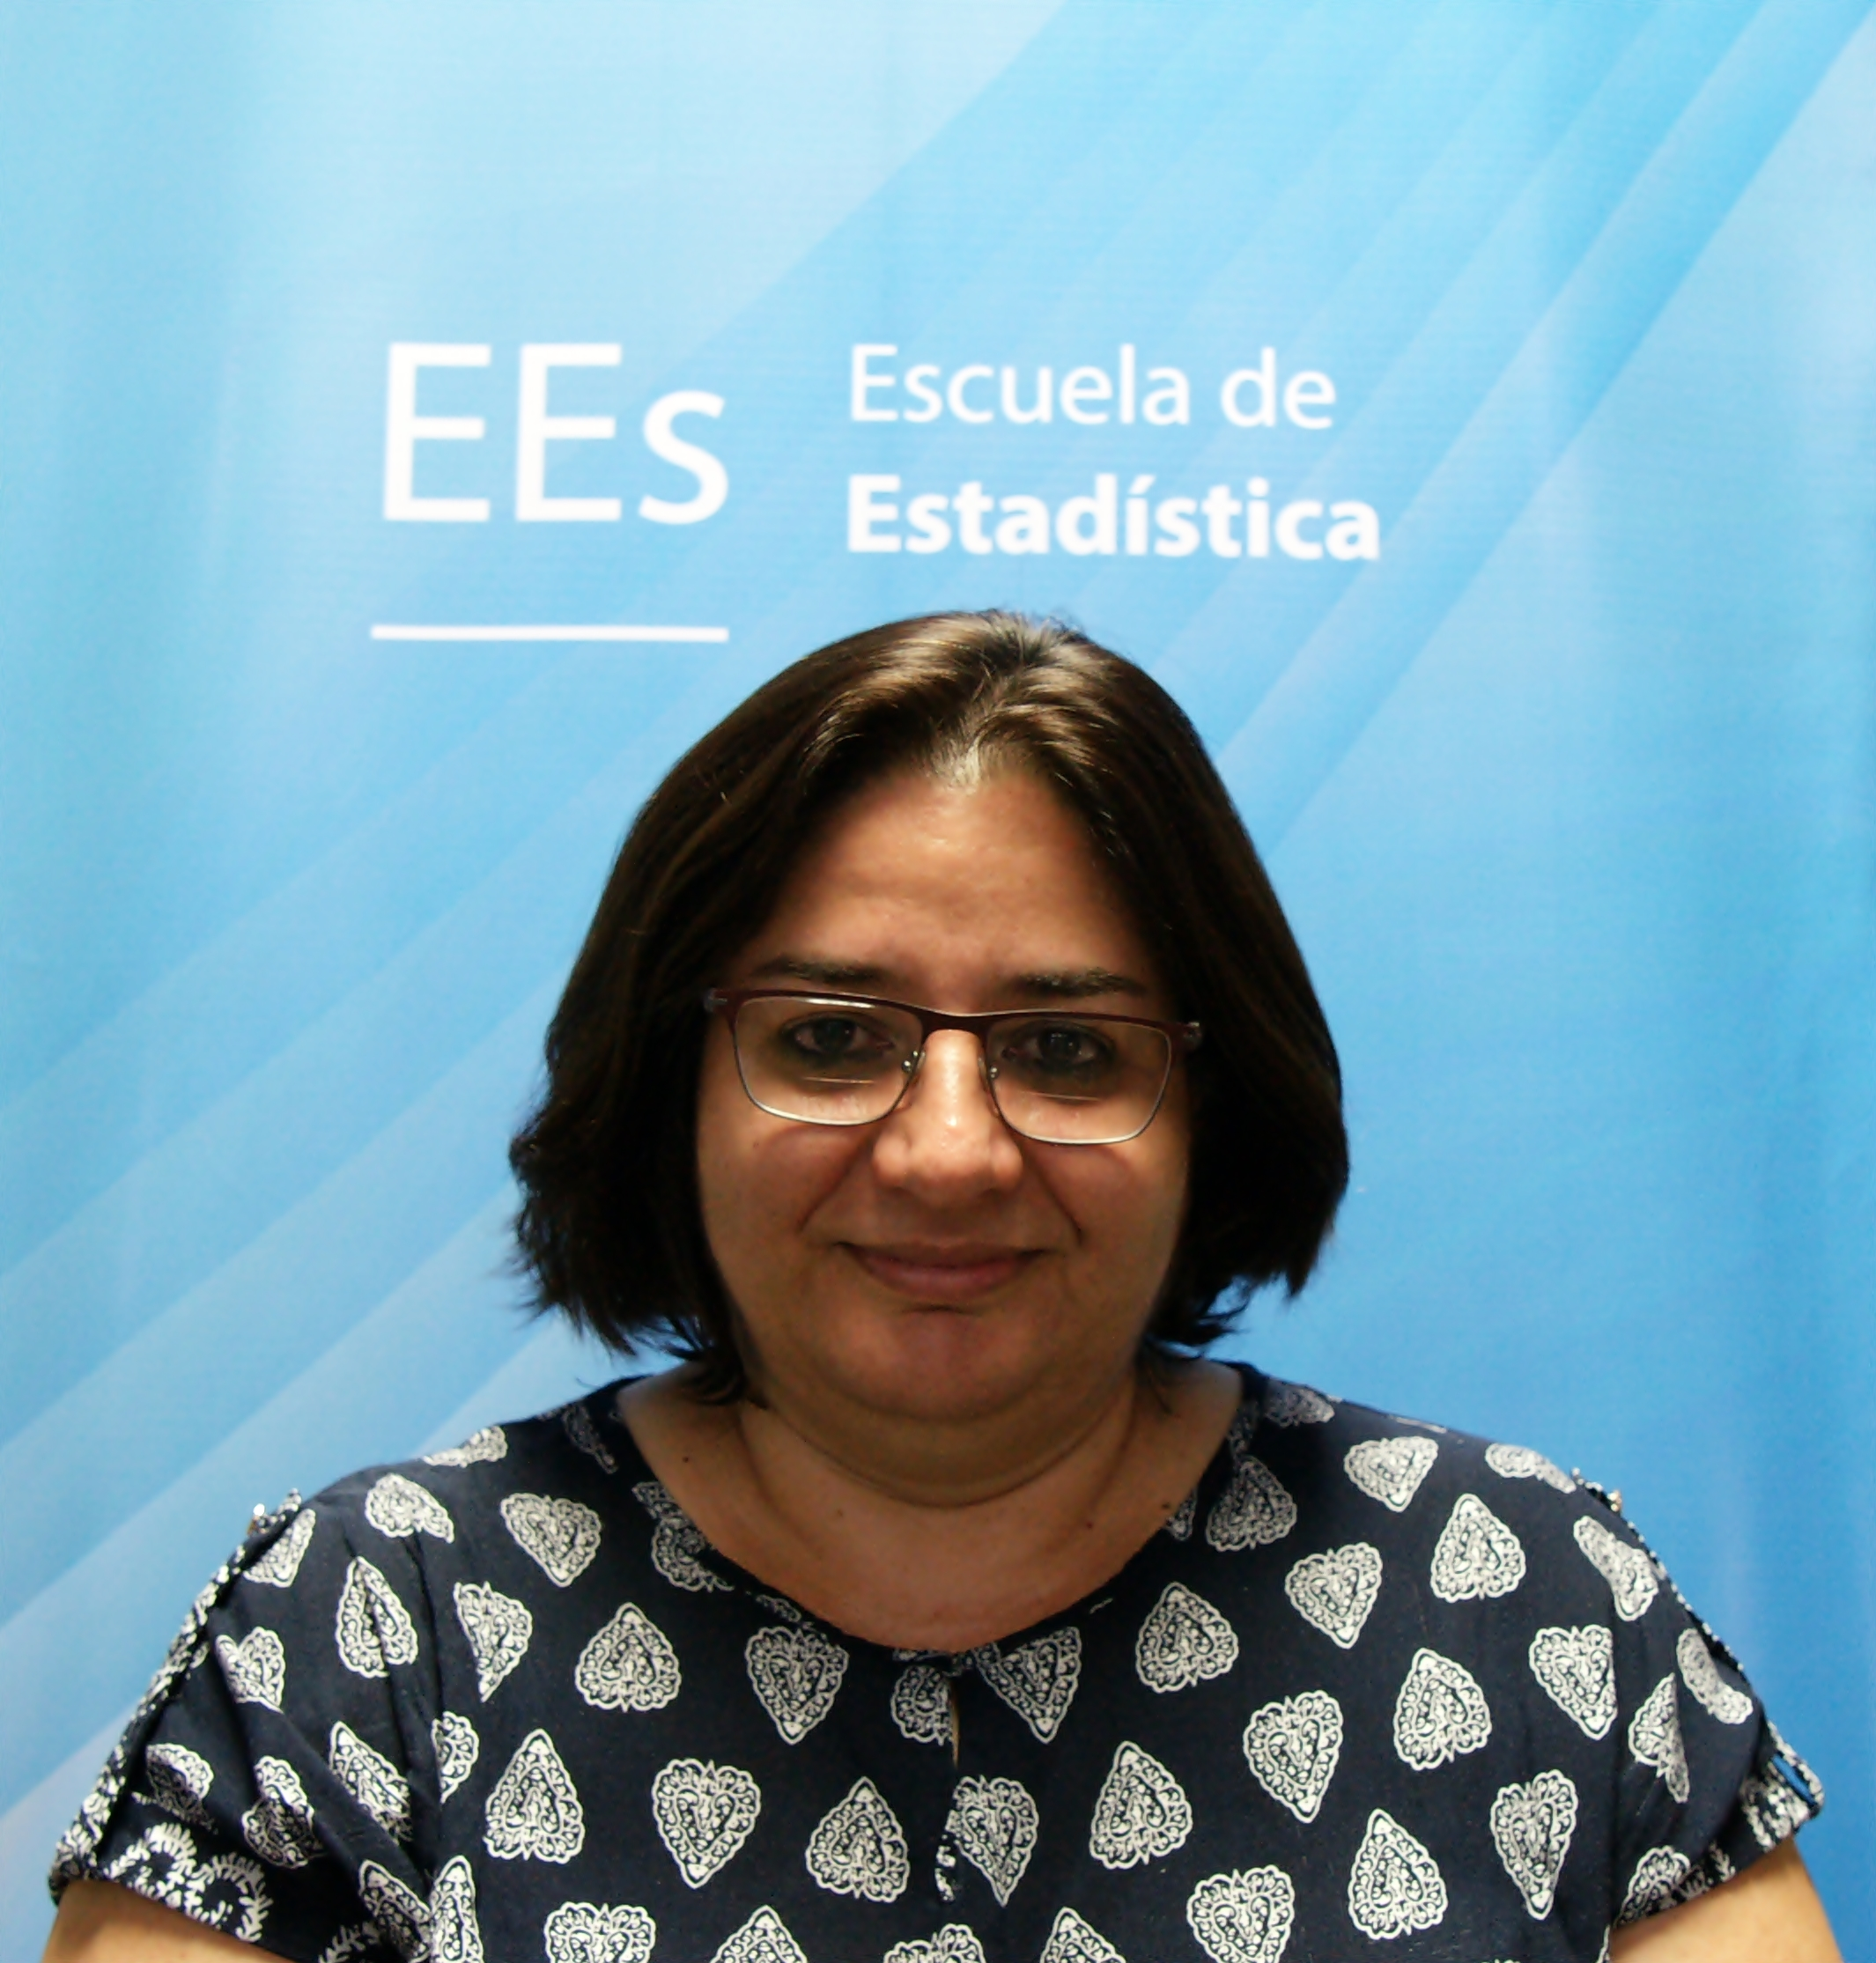 Ph.D. Eiliana Montero Rojas